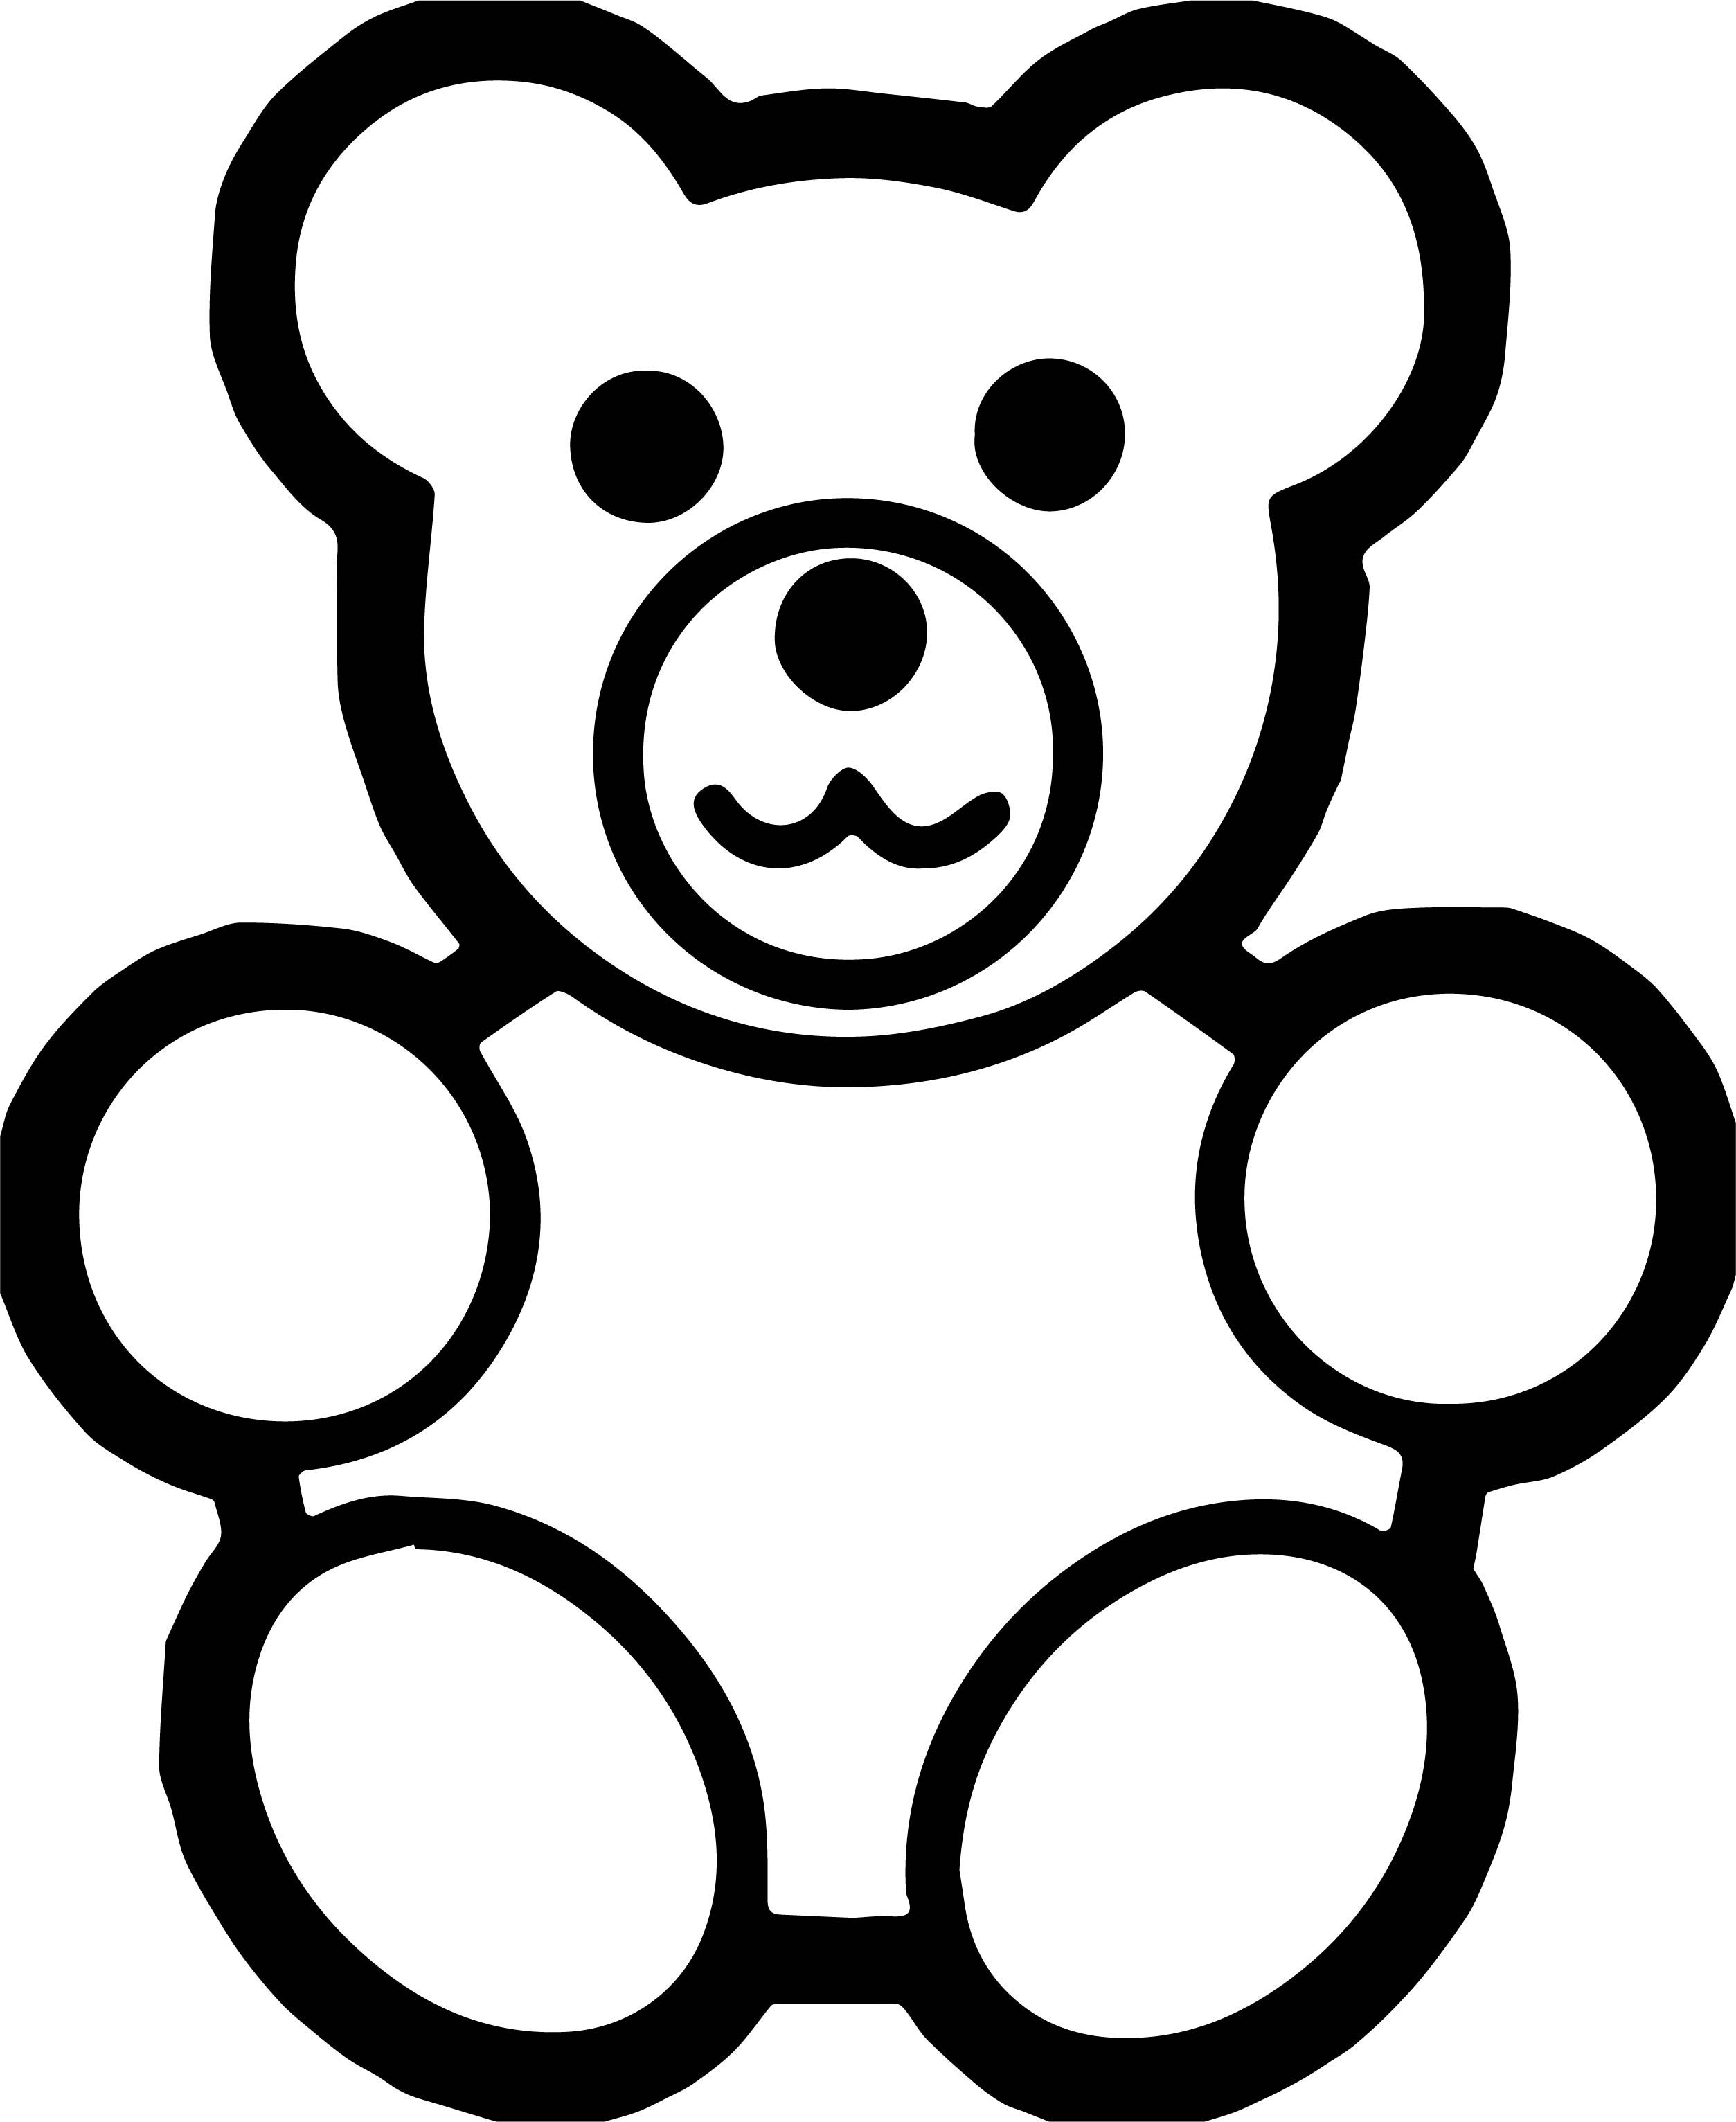 Awesome Read Bear Coloring Page Bear Coloring Pages Teddy Bear Drawing Teddy Bear Outline